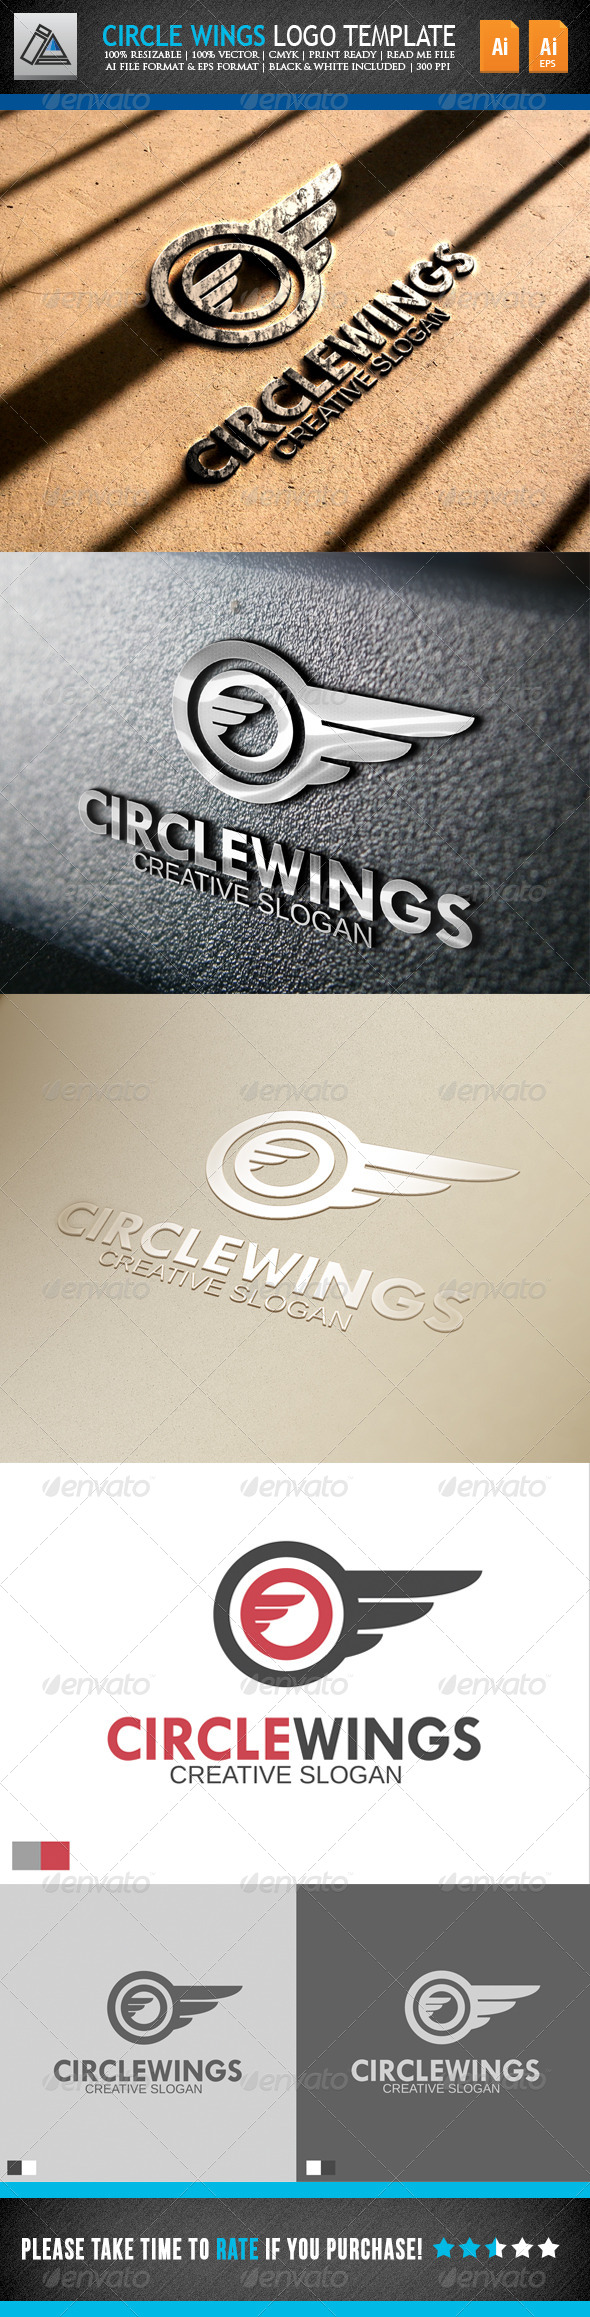 Circle Wings Logo Template - Objects Logo Templates